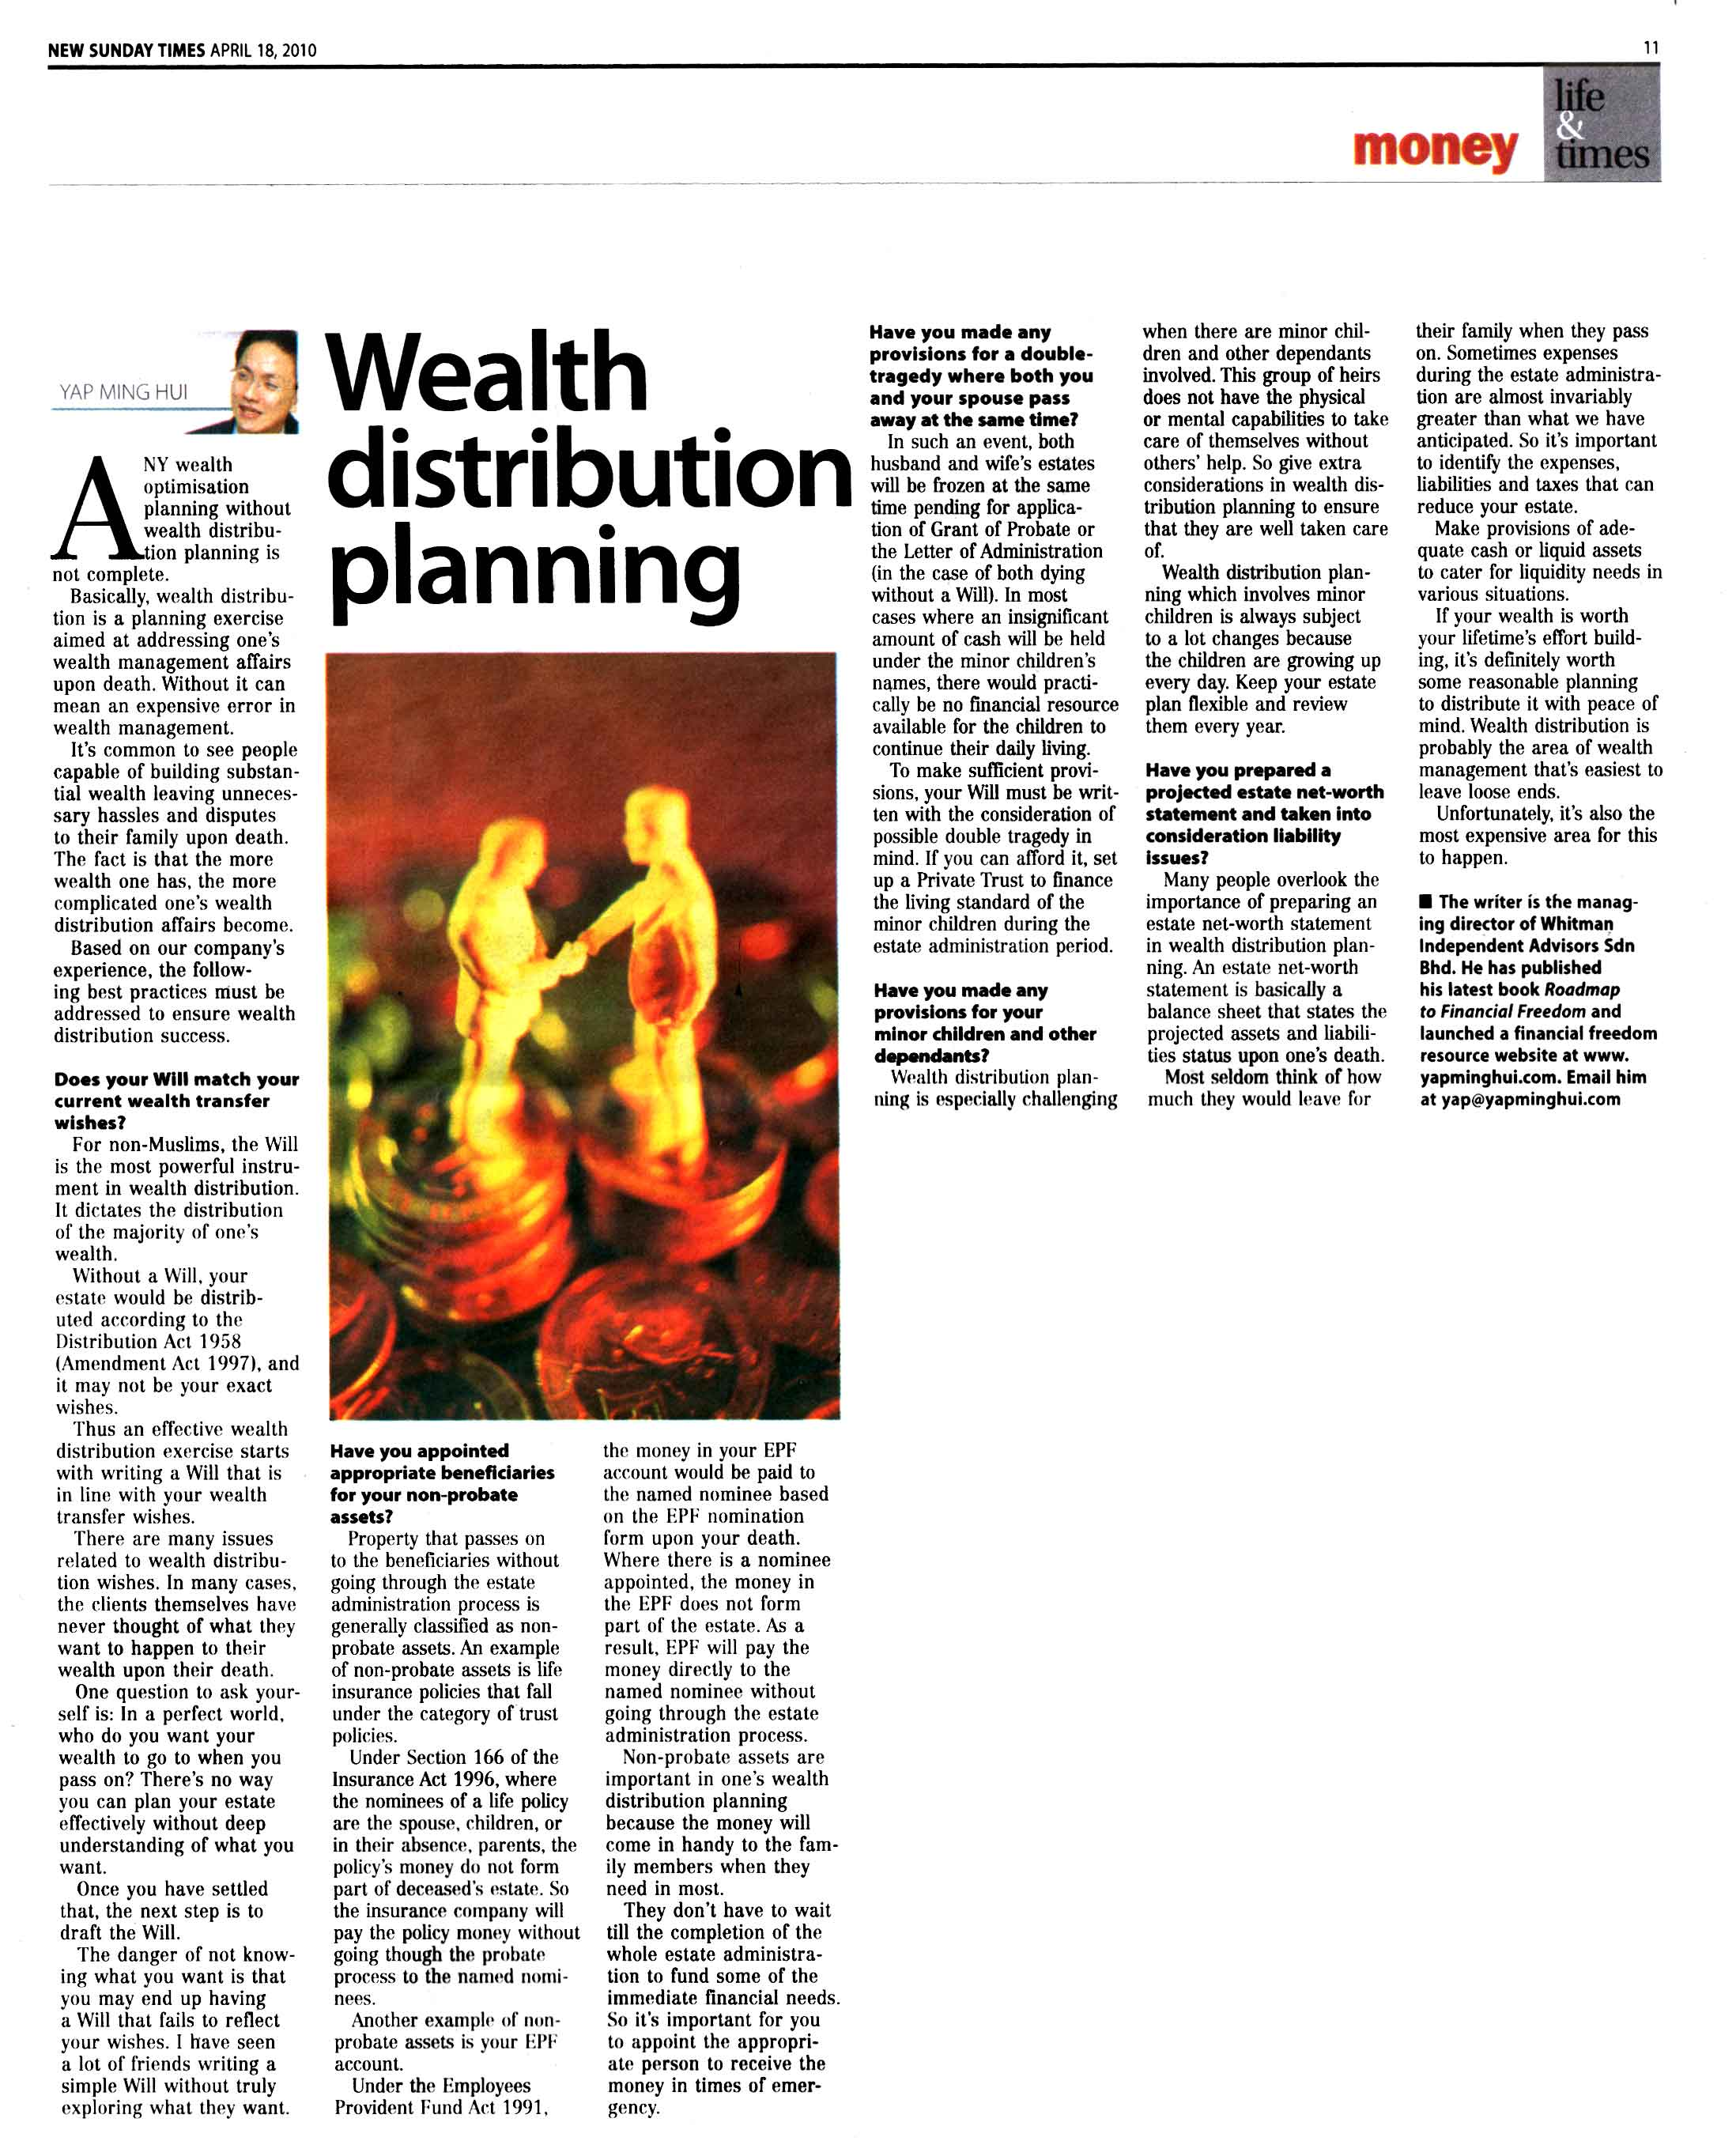 Wealth distribution planning (New Sunday Times) - 18 Apr 2010